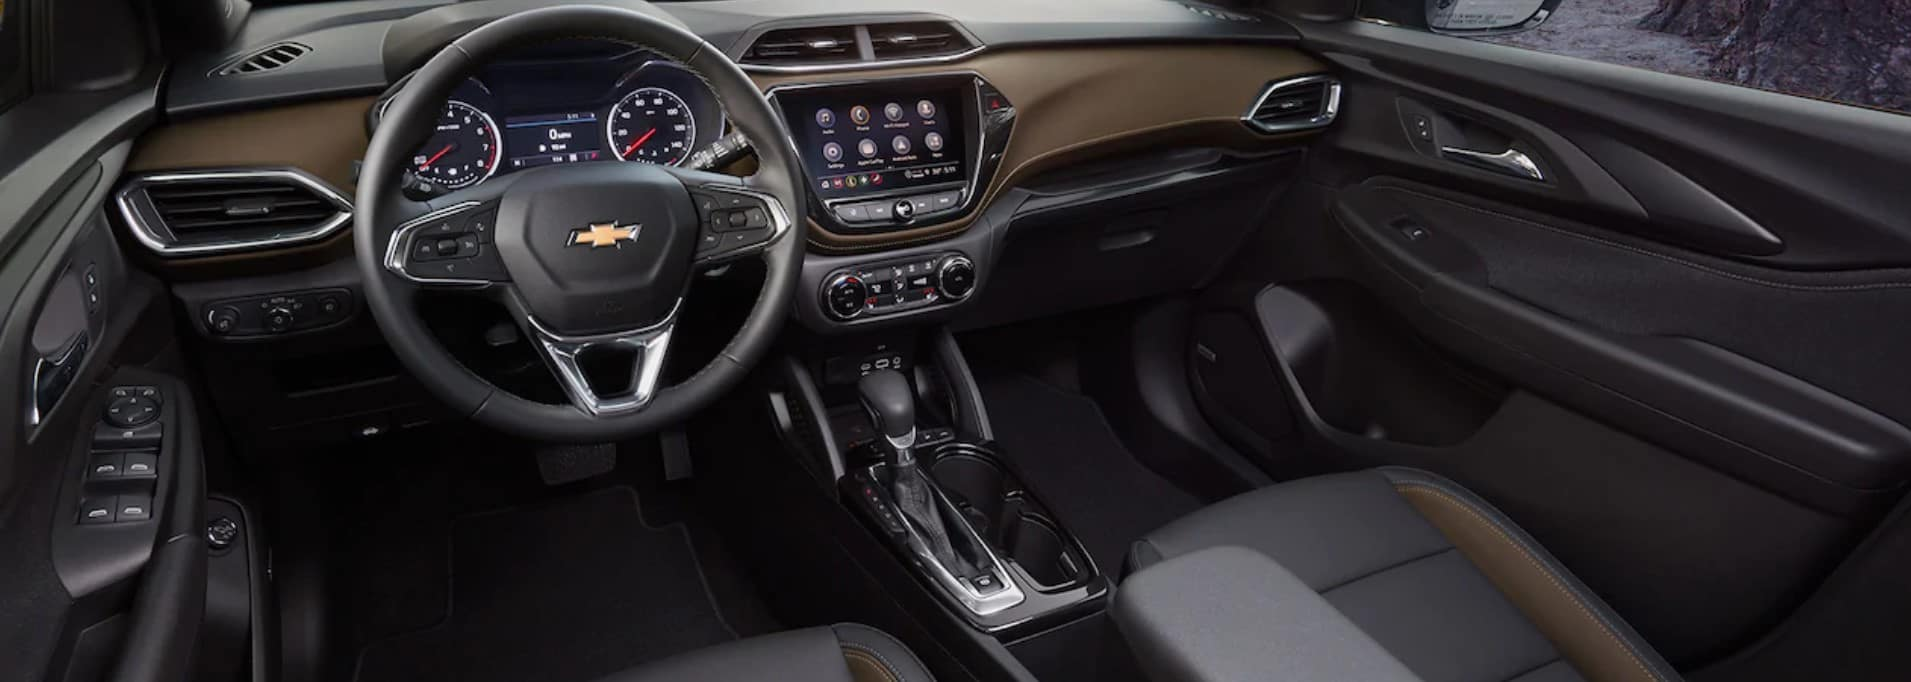 2021 Chevy Trailblazer Dashboard